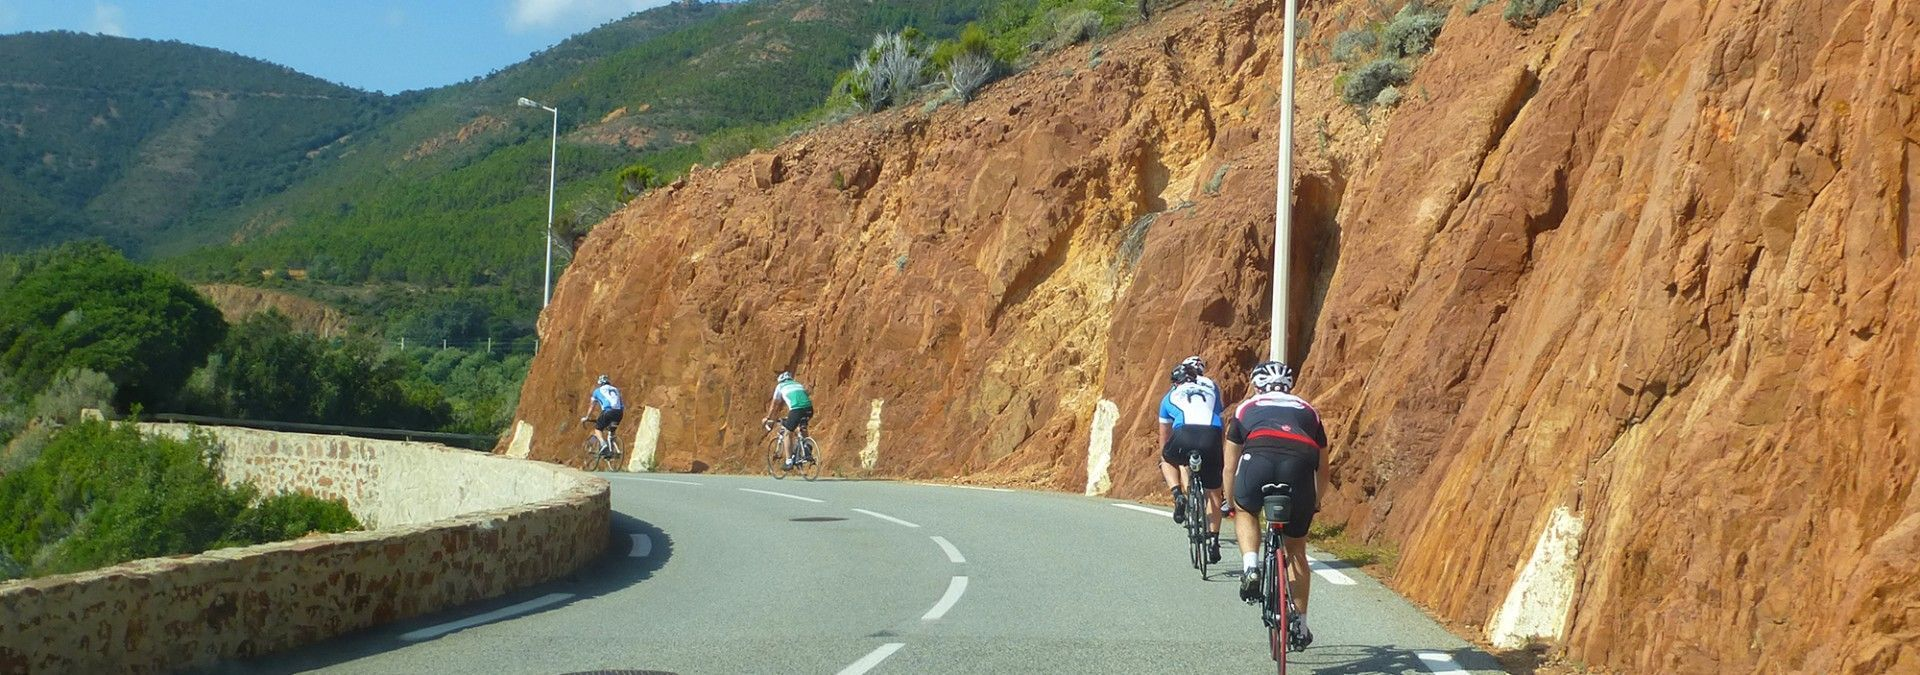 Cycling_rock_lined_road_to_Carcassonne.jpg